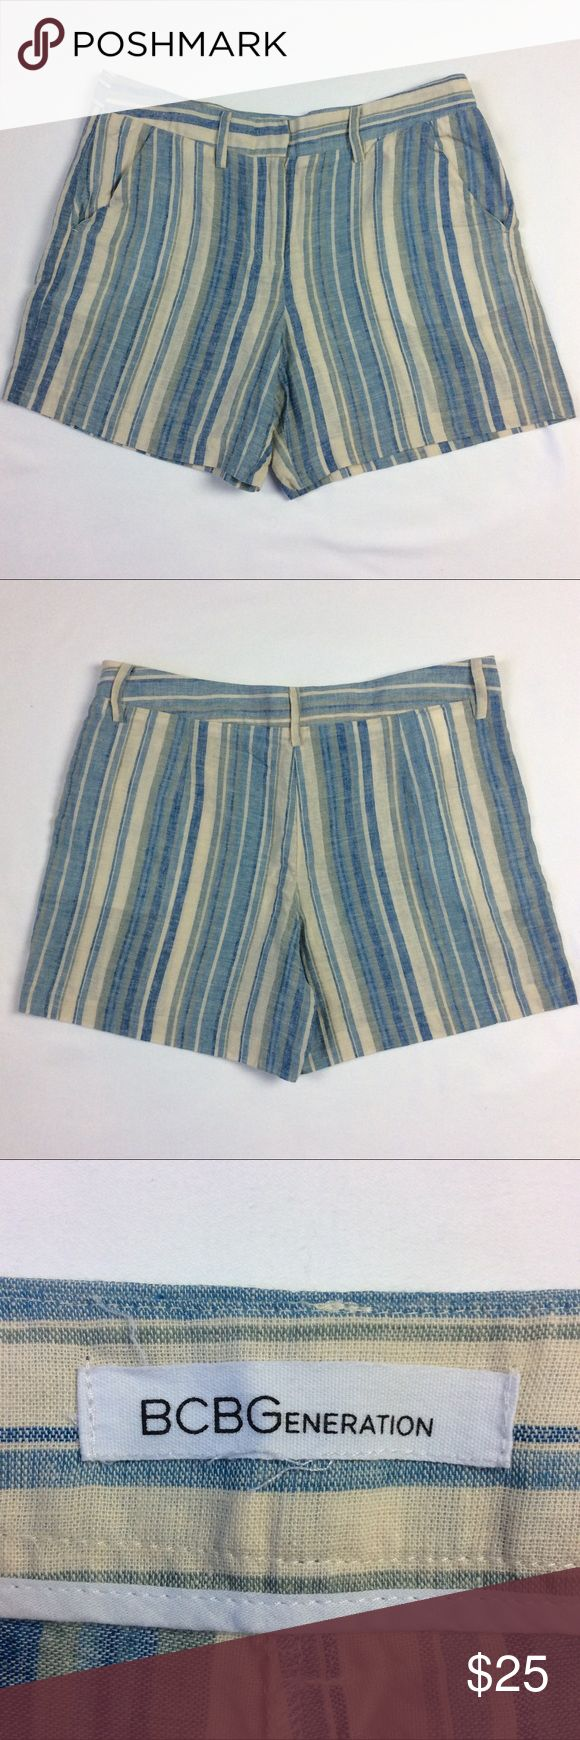 "BCBGenerations Linen/Cotton blend striped shorts BCBGenerations Linen/Cotton blend shorts  Size 6  Flat lay measurements:  waist- 16""  rise- 10""  hips- 14""  inseam- 5""  leg opening- 11"" BCBGeneration Shorts"